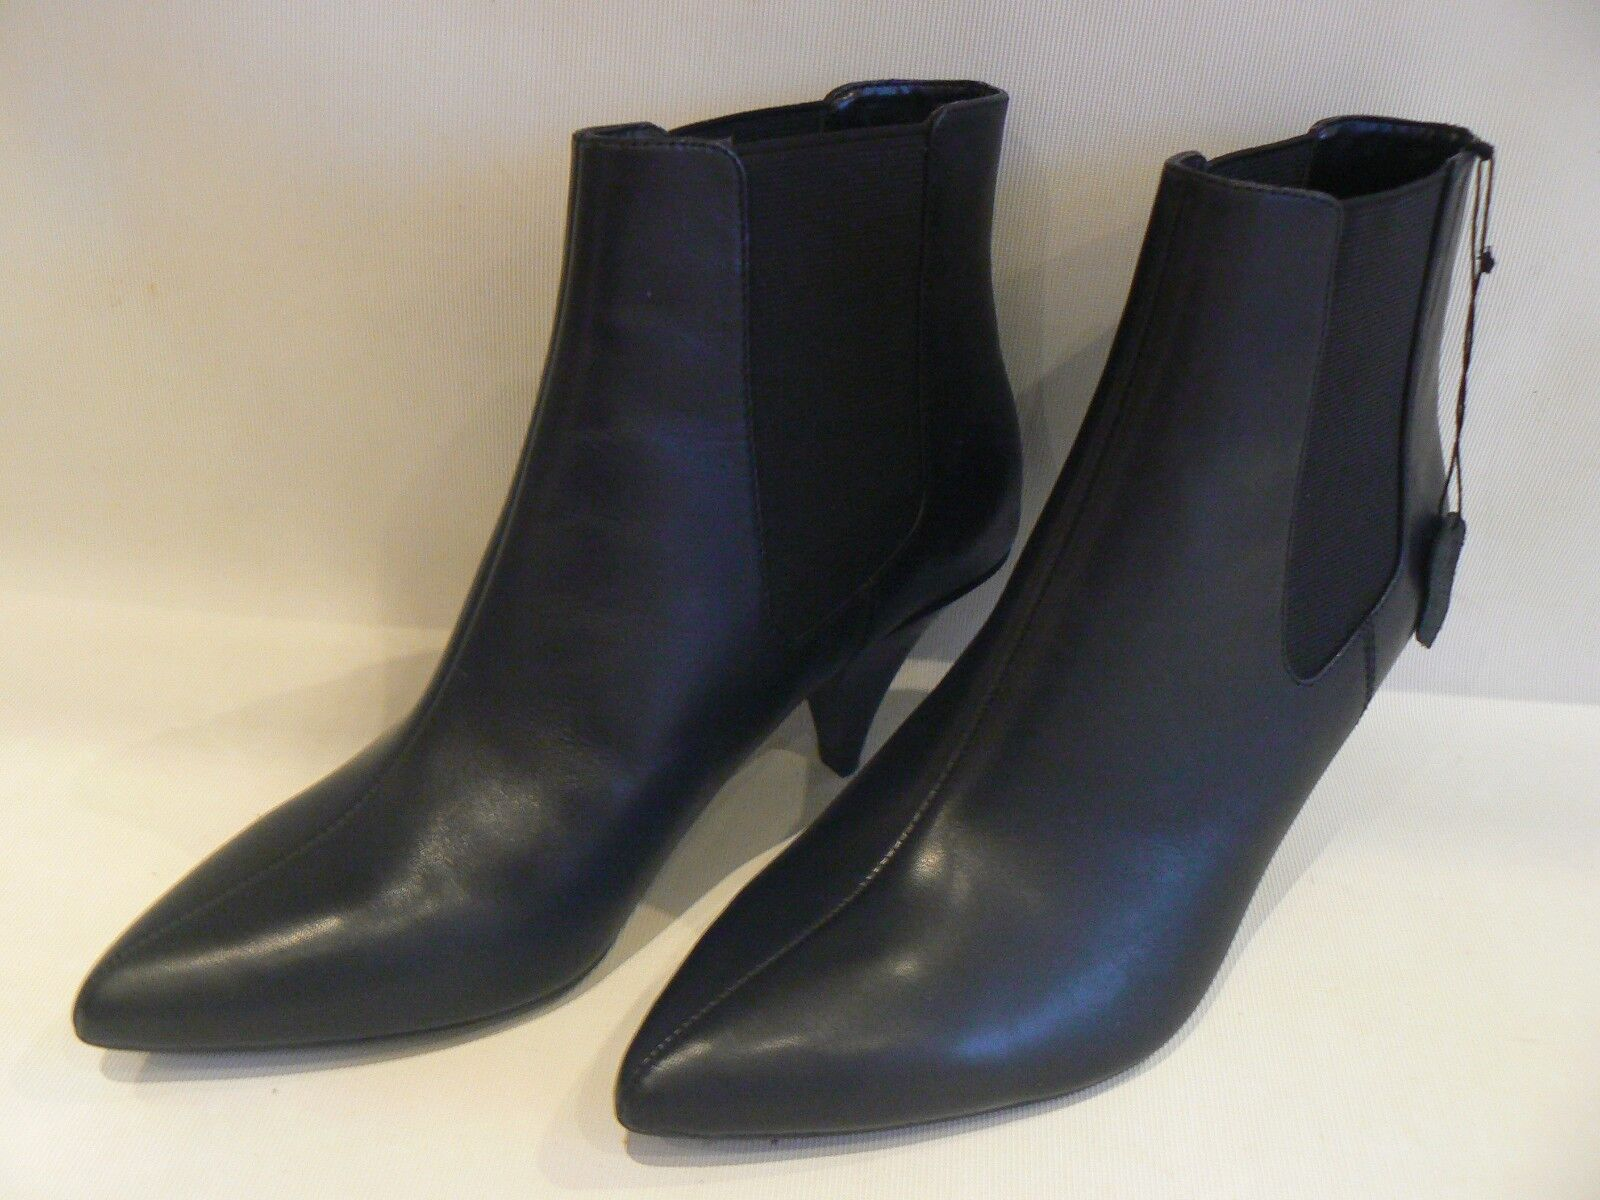 MARKS & SPENCER Black Leather Ankle Boots Kitten Heel Size 5 / 5.5 /6 /7 / 8 NEW